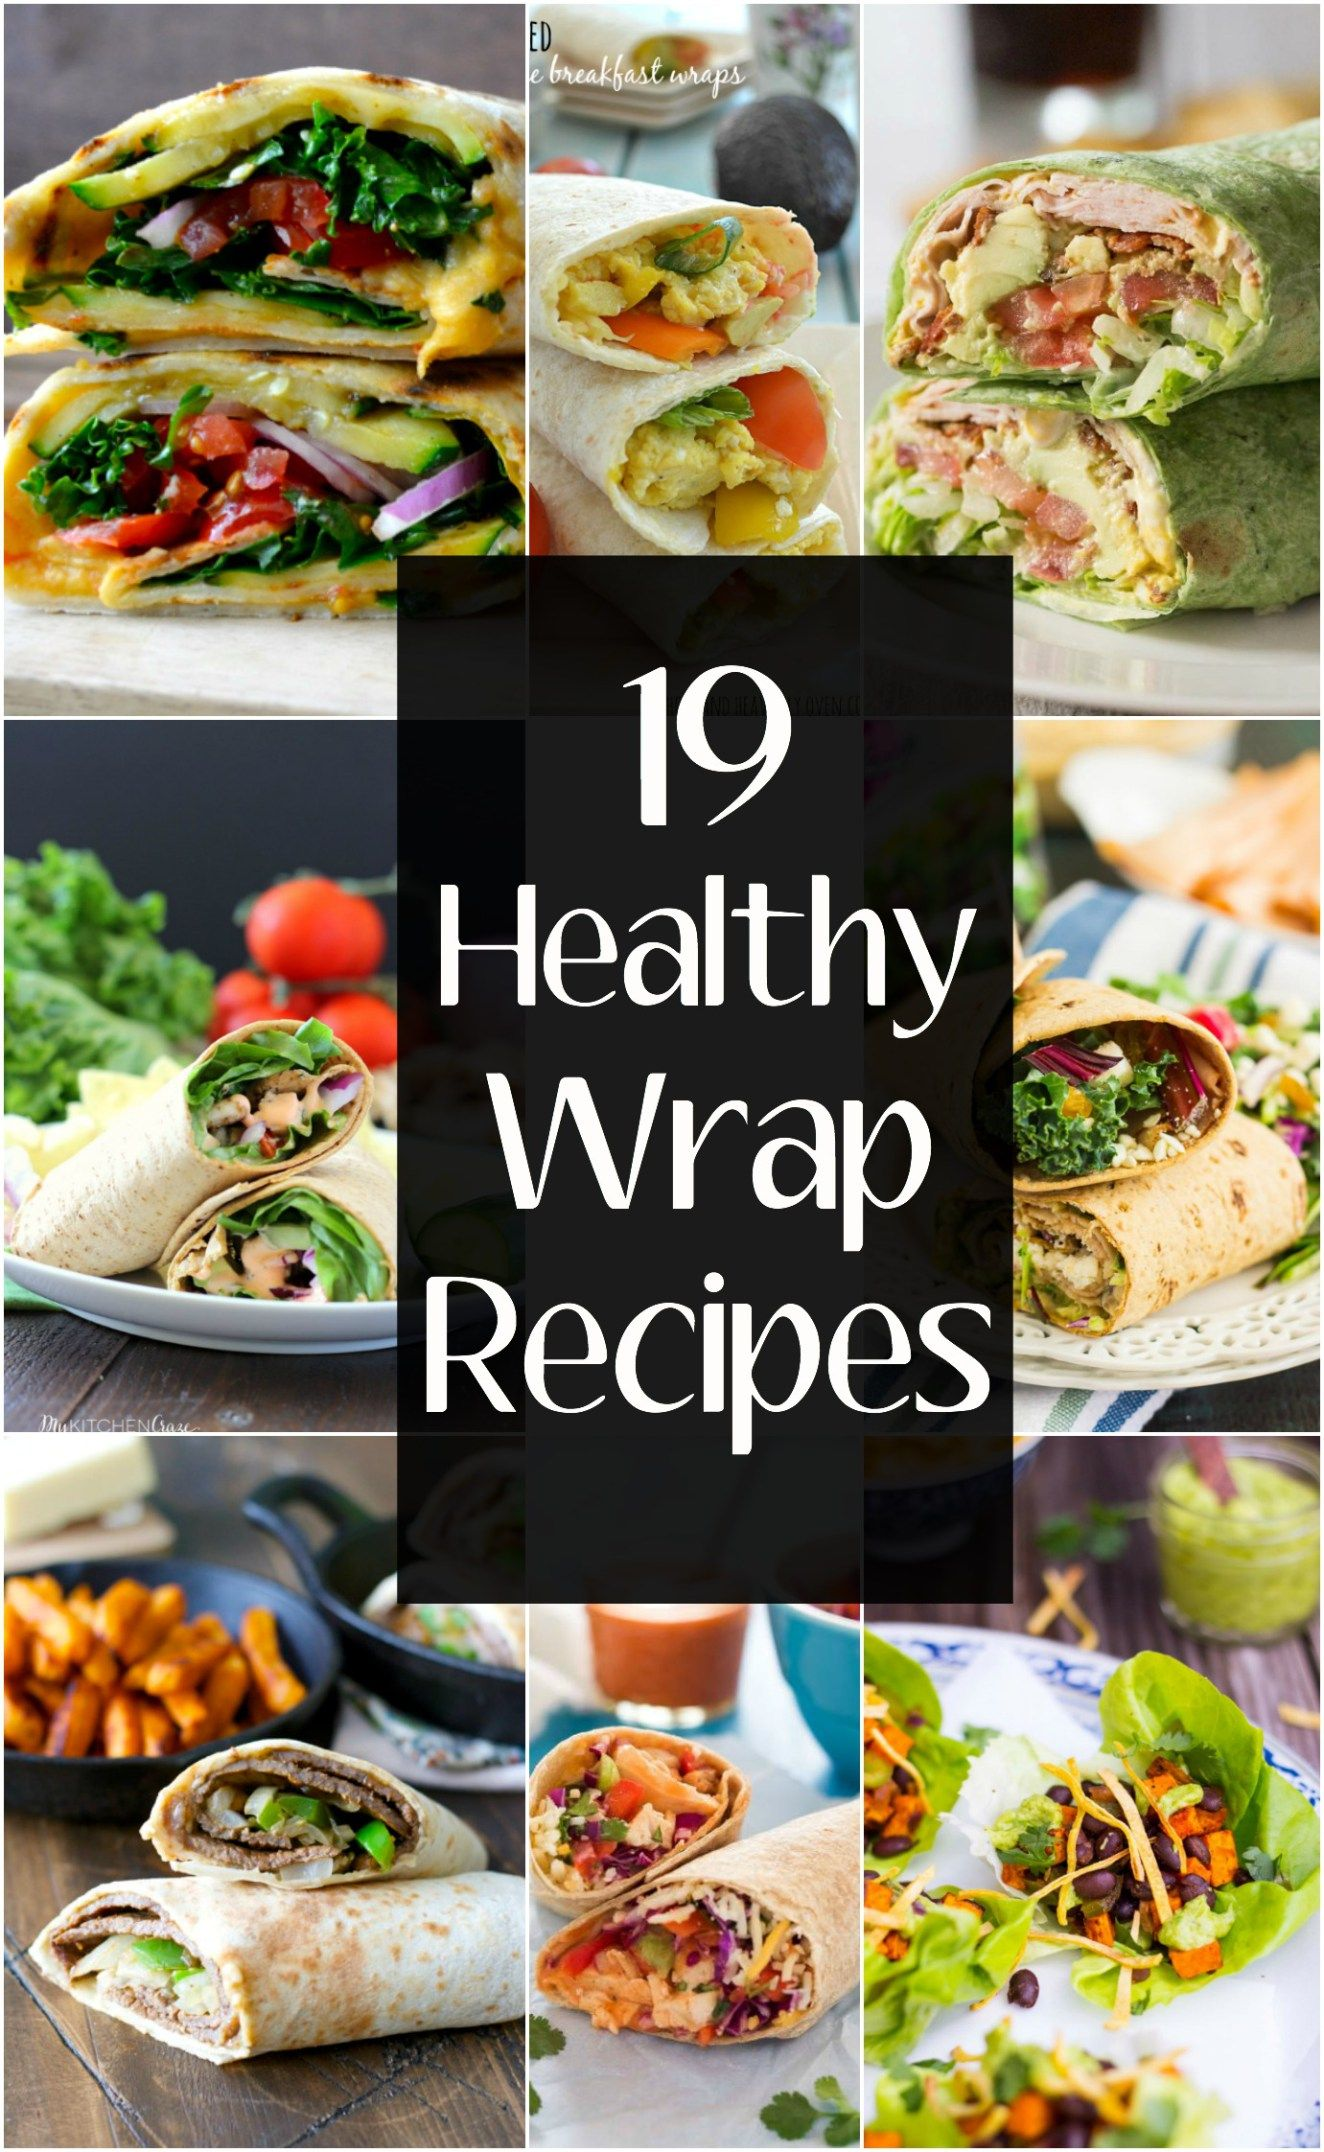 Home wrap for weight loss - easy and simple